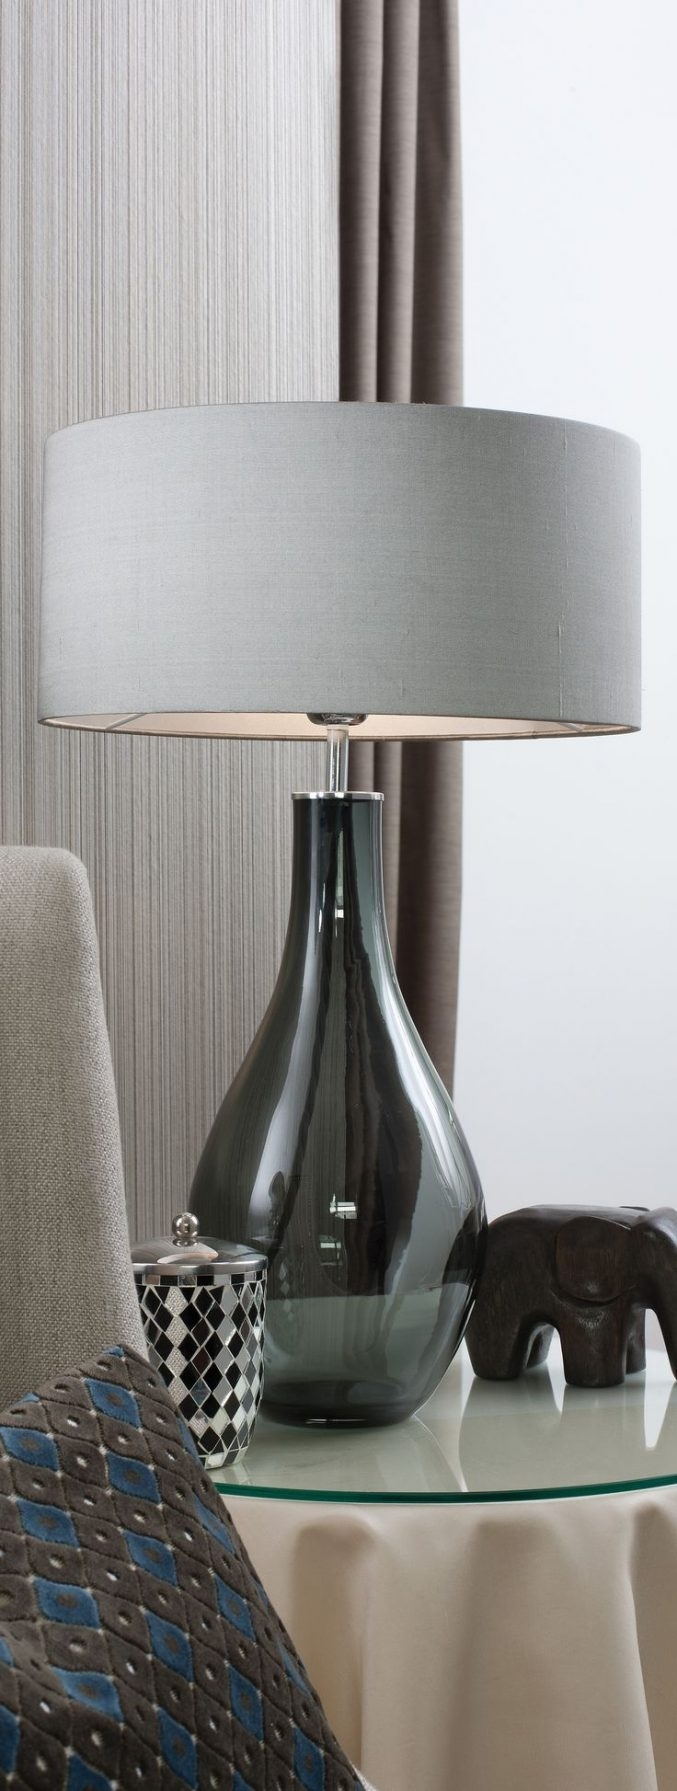 End Tables : Unbelievable Floor Lamps Decorative For Living Room With Pink Table Lamps For Living Room (View 1 of 15)